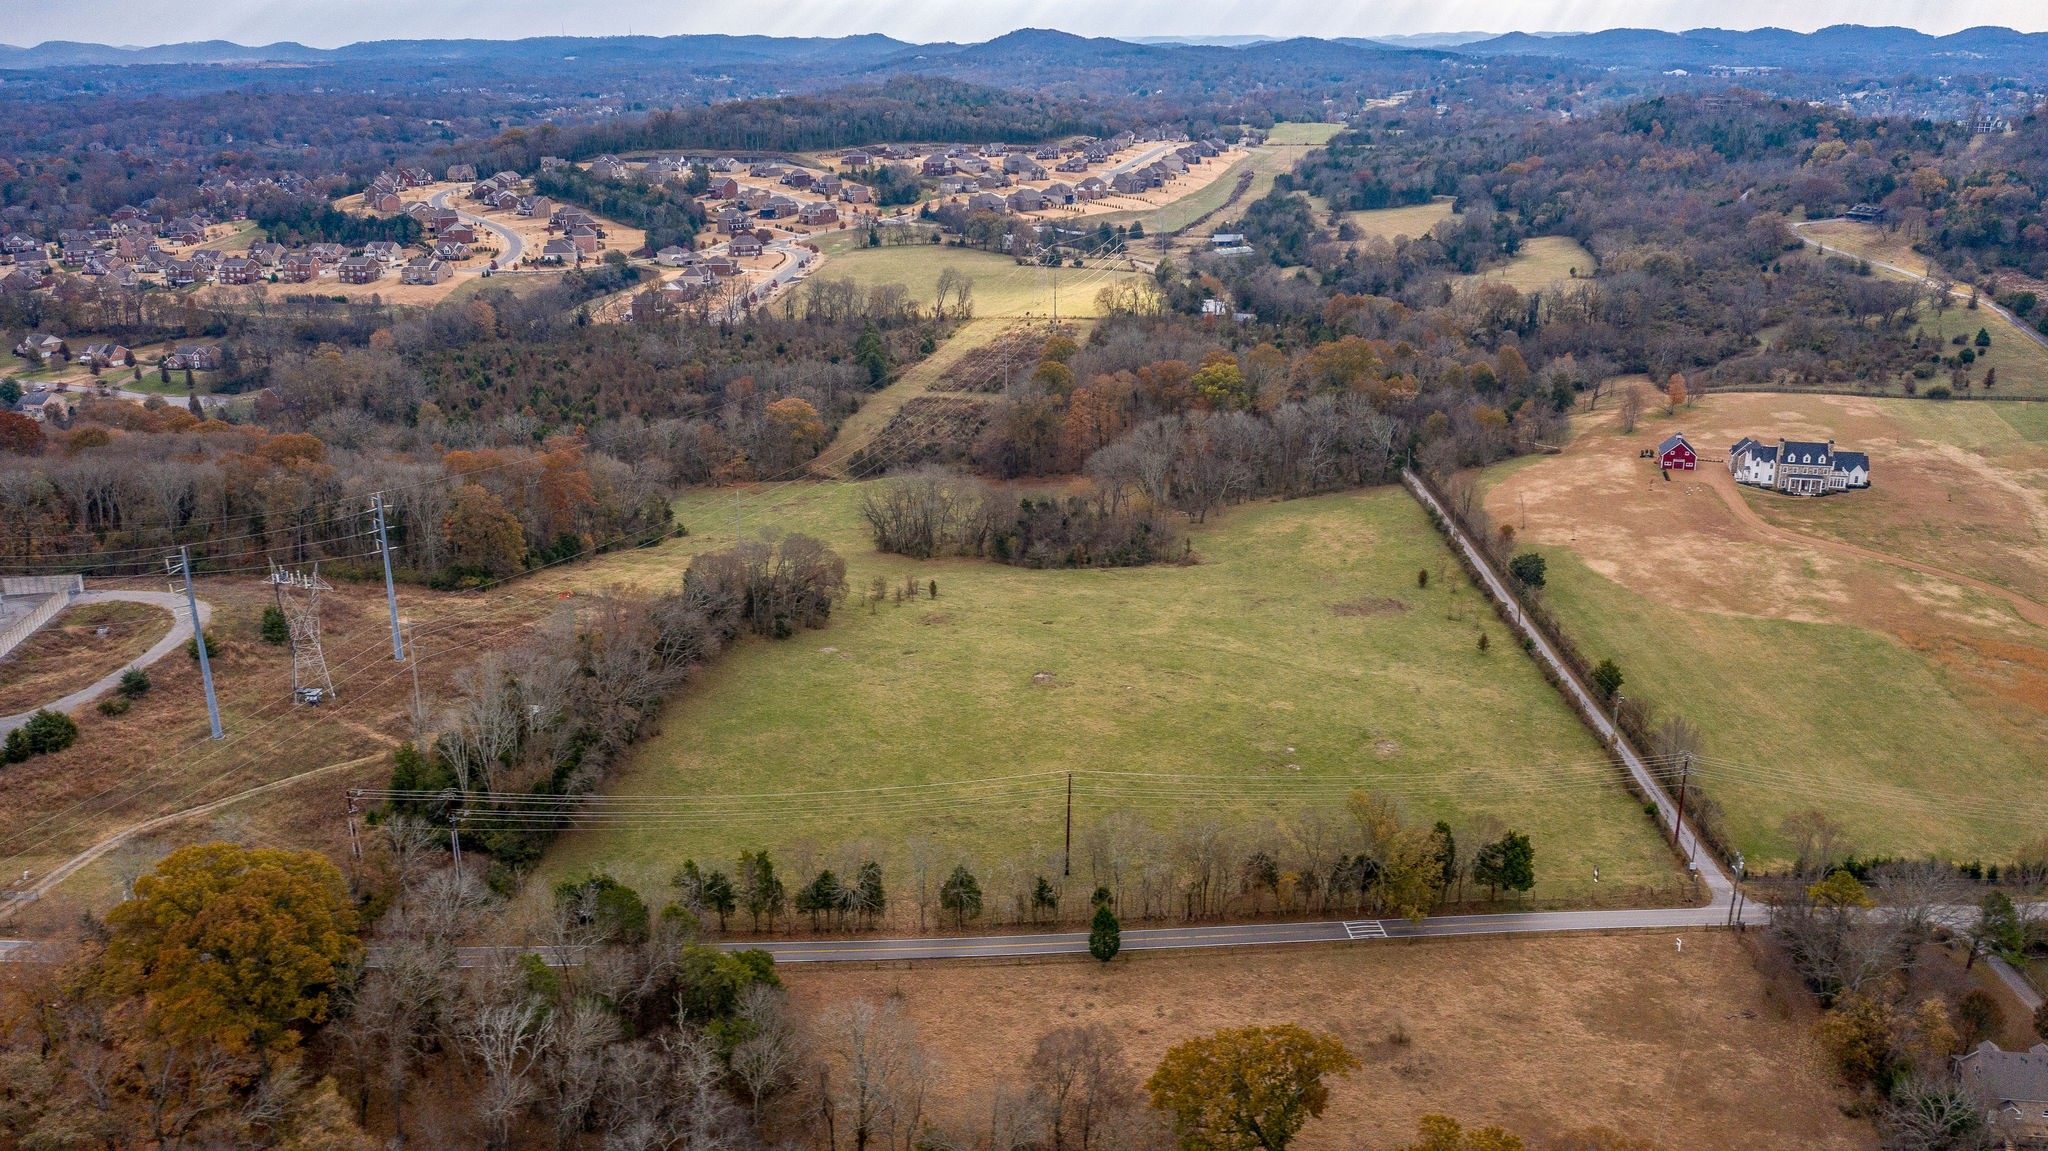 0 Old Smyrna Road 38.93 acre, Brentwood, TN 37027 - Brentwood, TN real estate listing